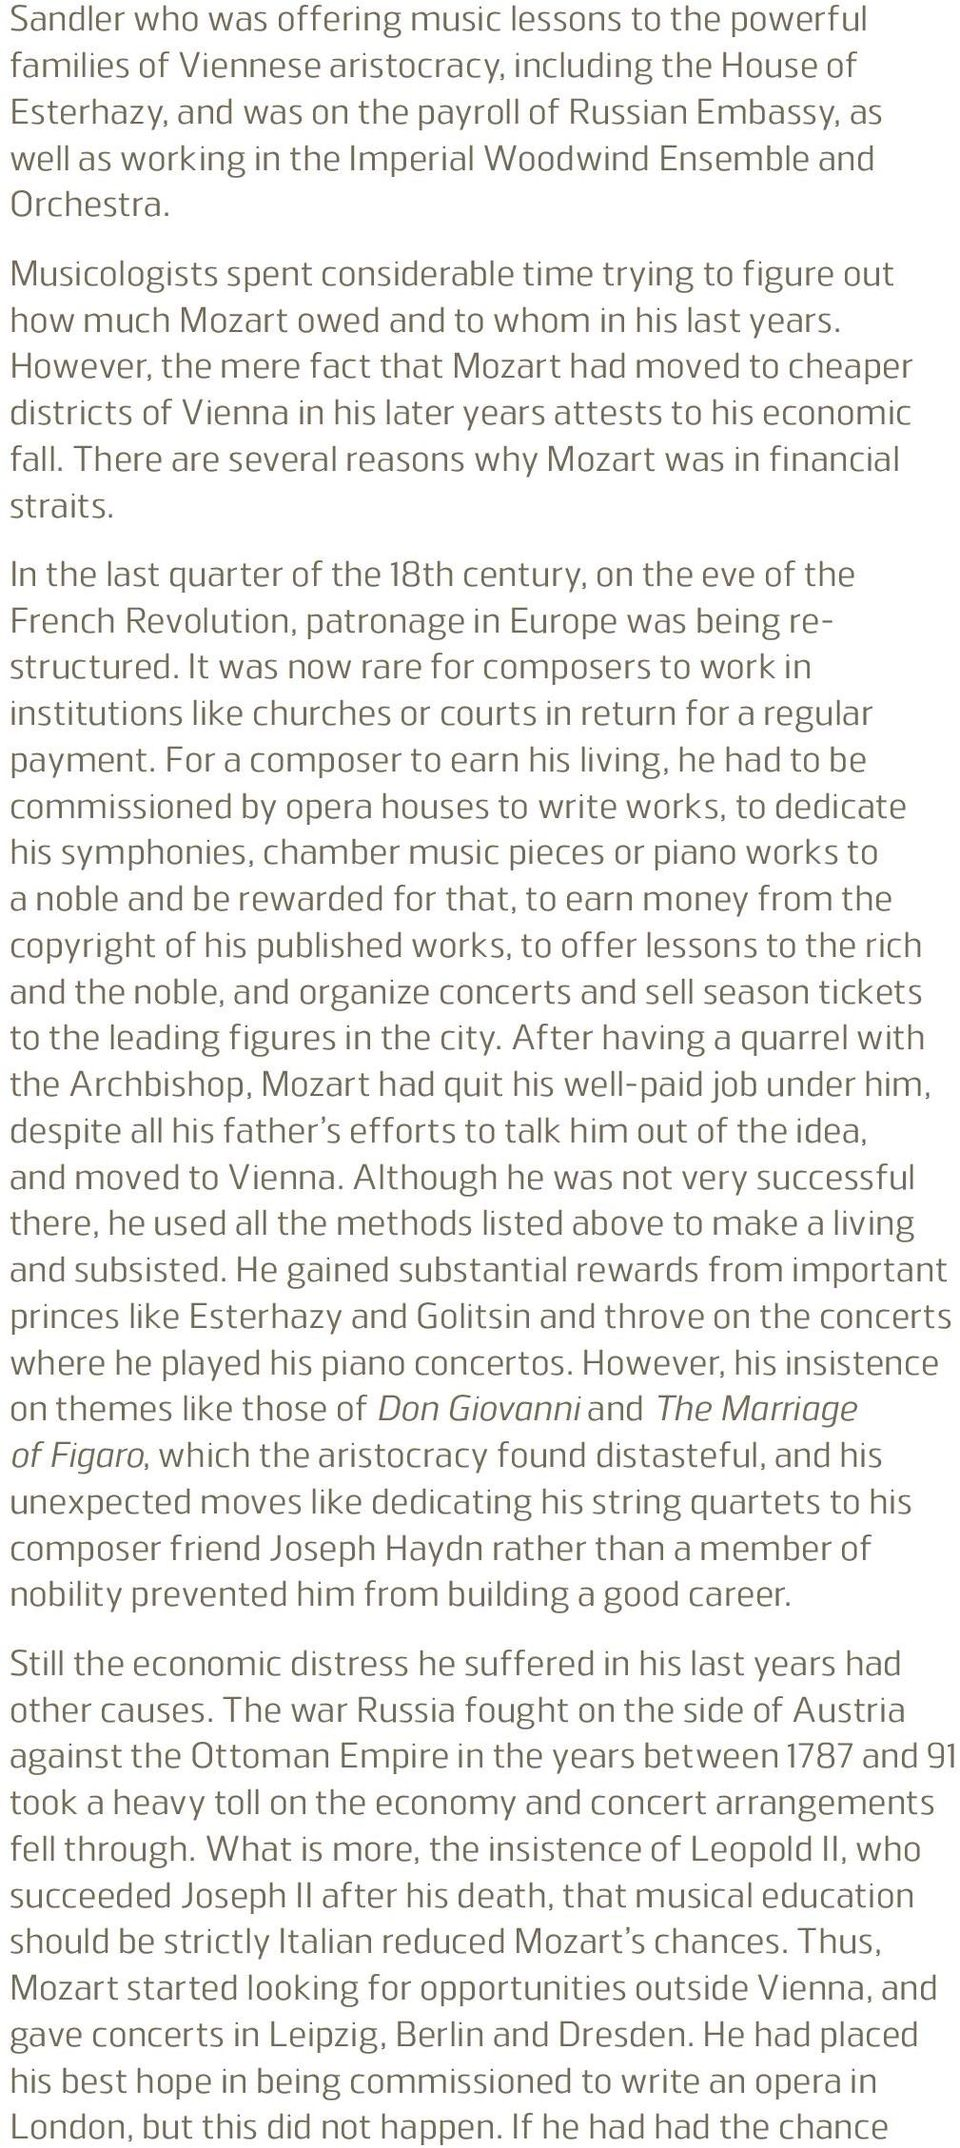 However, the mere fact that Mozart had moved to cheaper districts of Vienna in his later years attests to his economic fall. There are several reasons why Mozart was in financial straits.